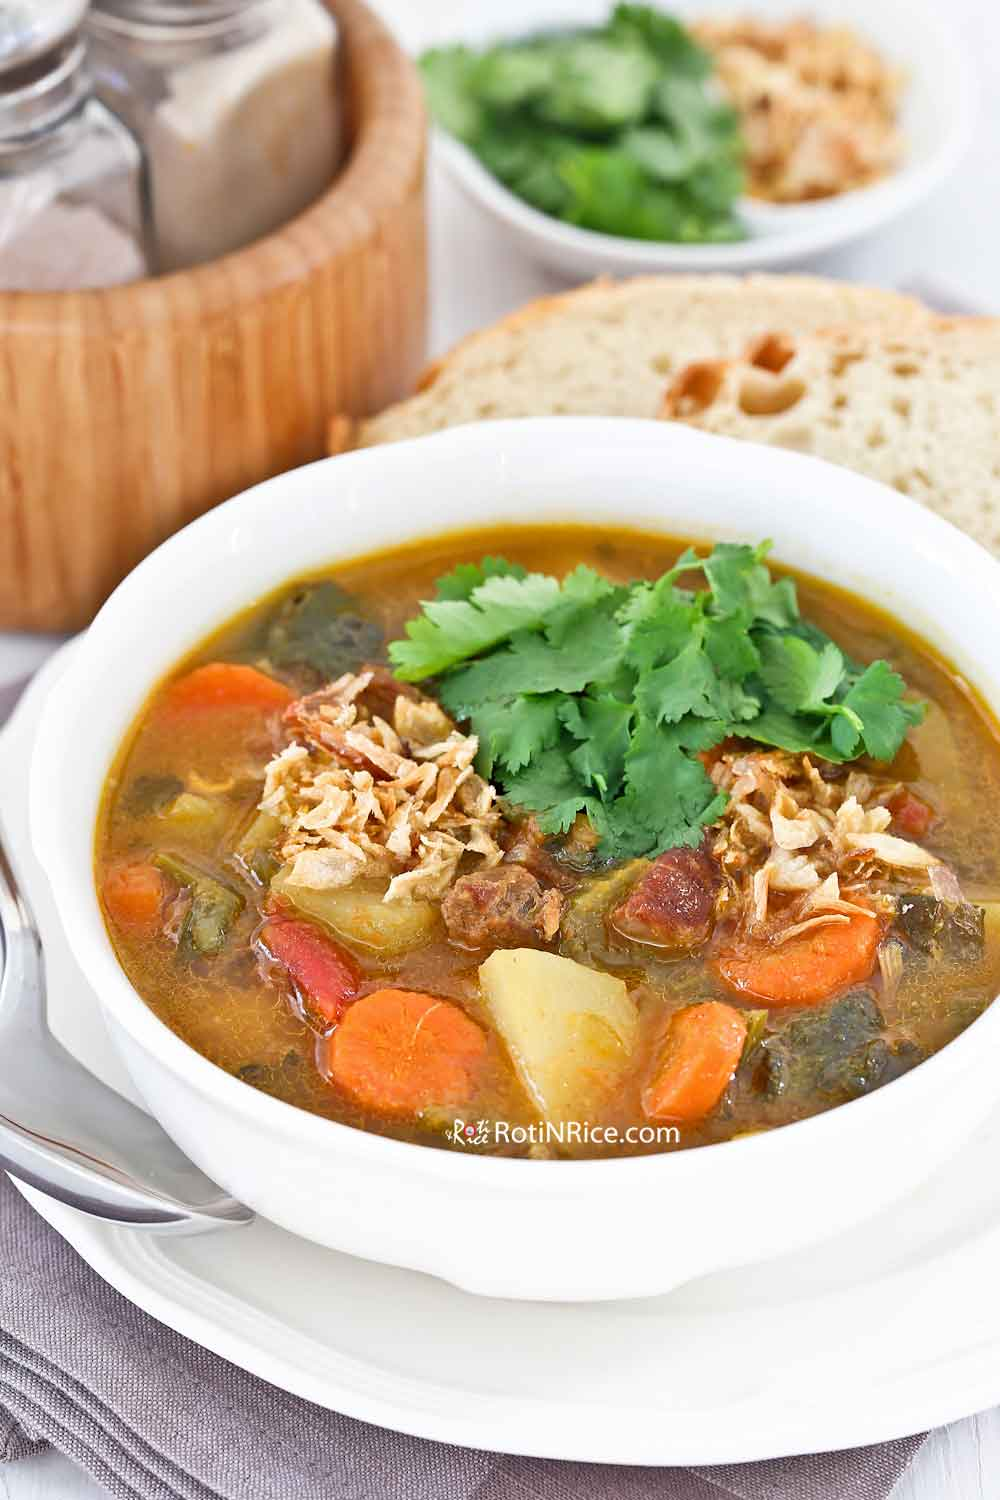 Hearty and flavorful Sup Kambing (Mutton/Lamb Soup).